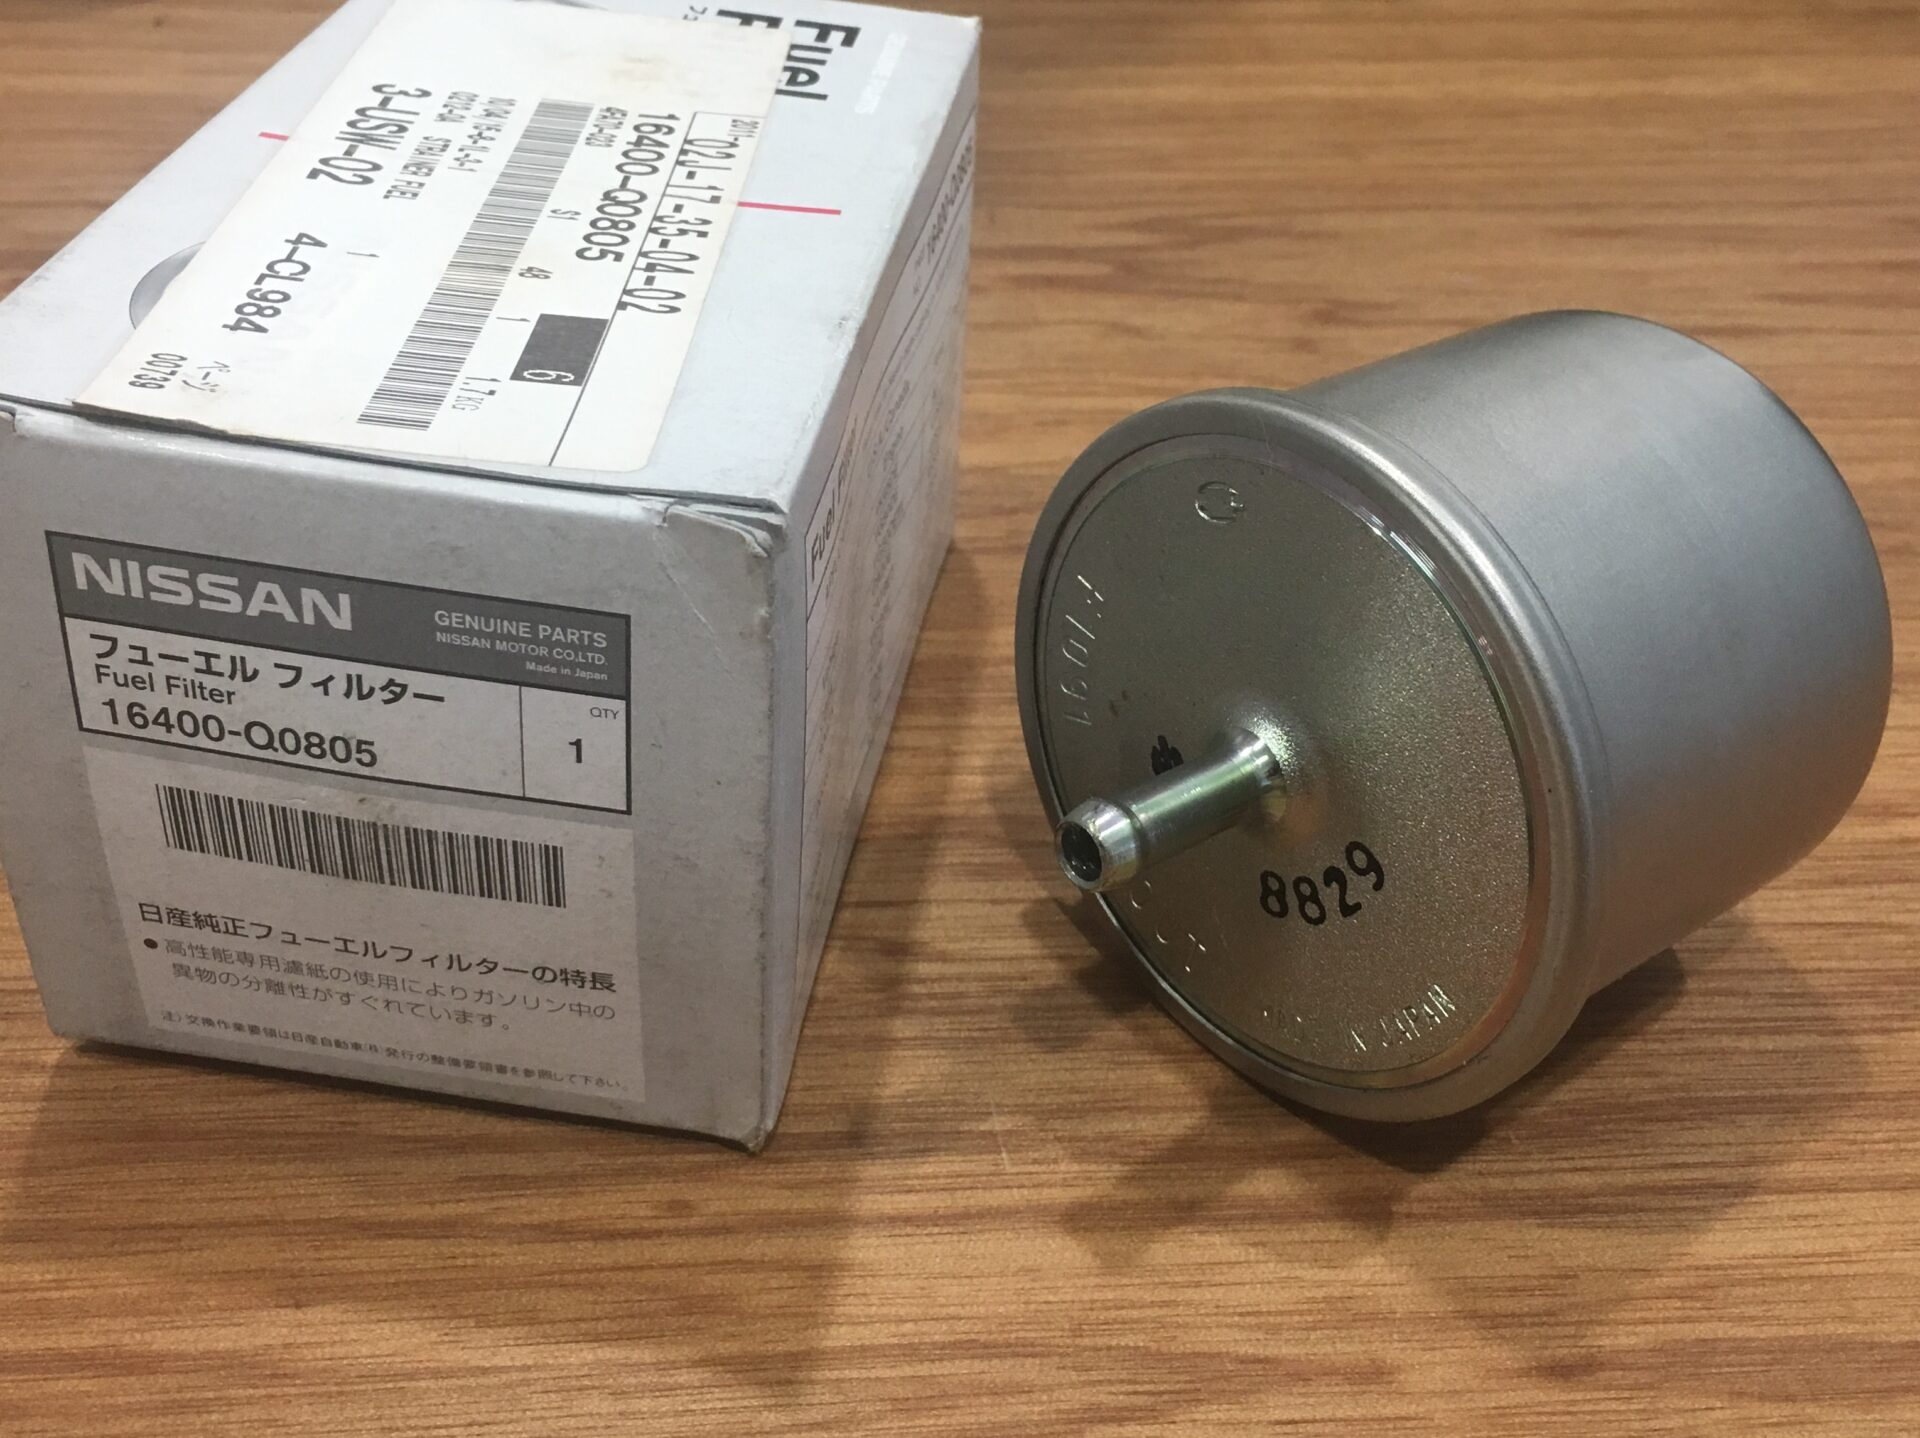 hight resolution of nissan oem fuel filter for z32 300zx free delivery rgs performance 35 00 inc